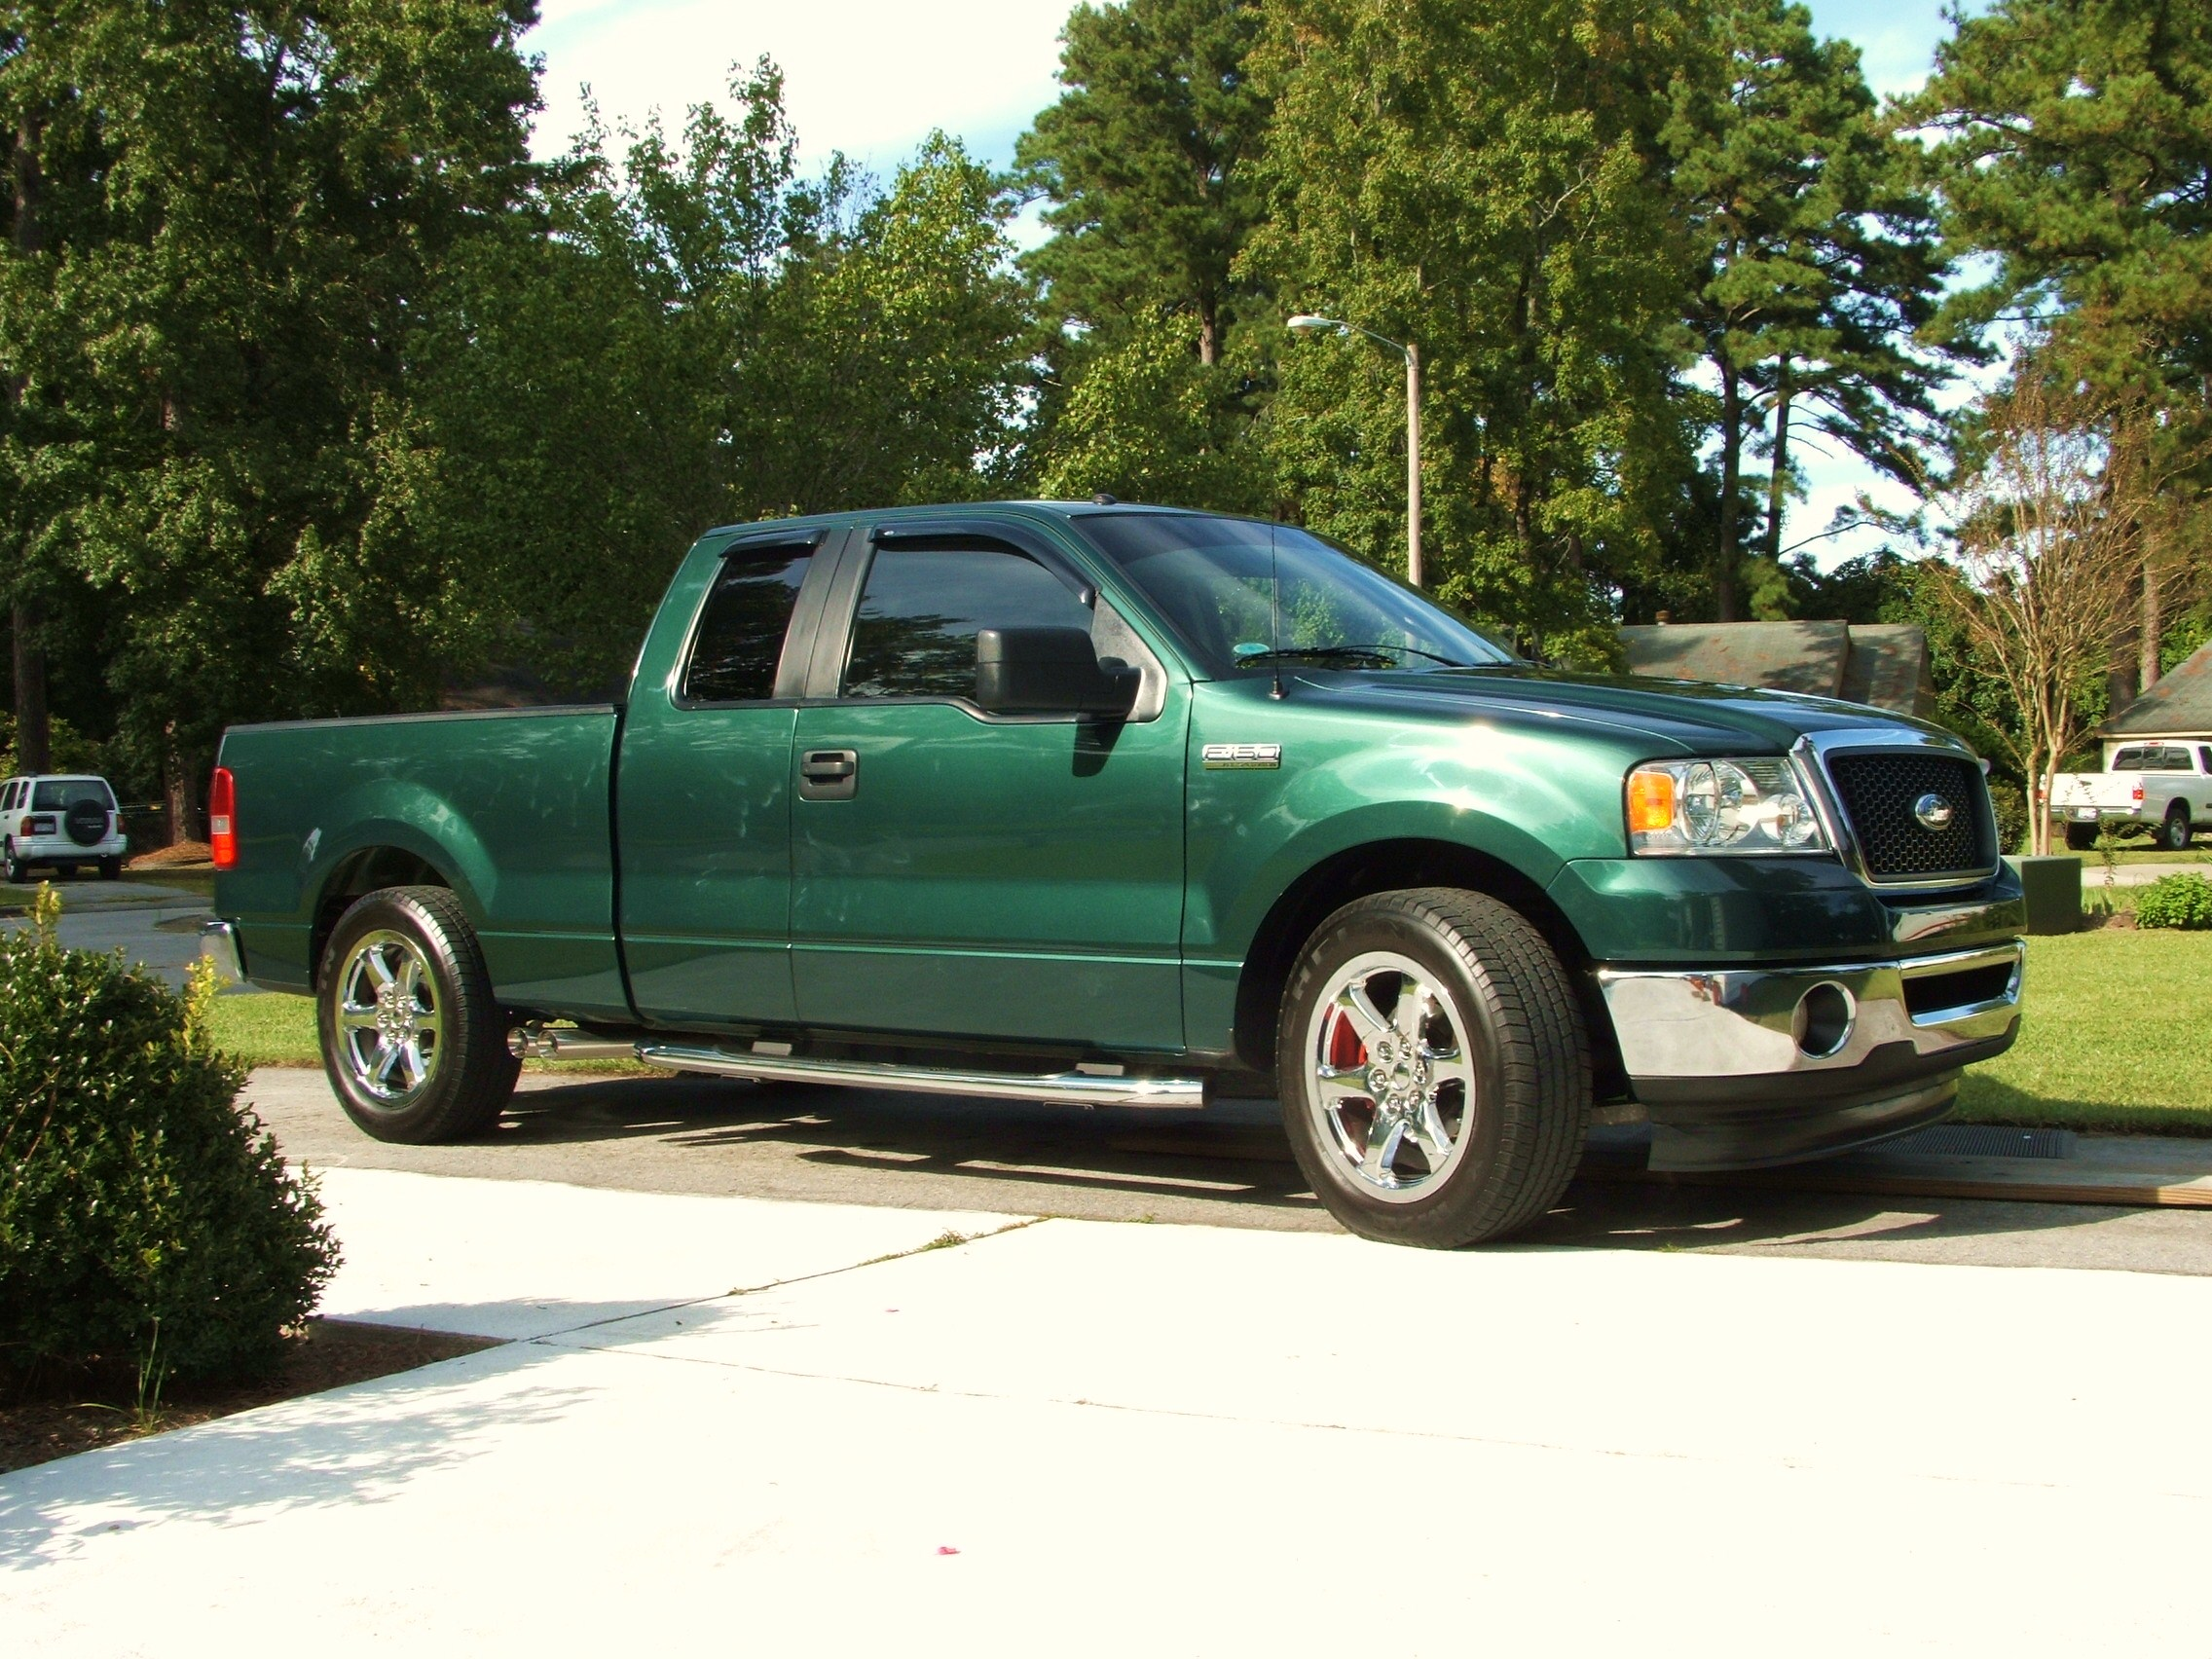 Ford f 150 2007 review amazing pictures and images look at the car